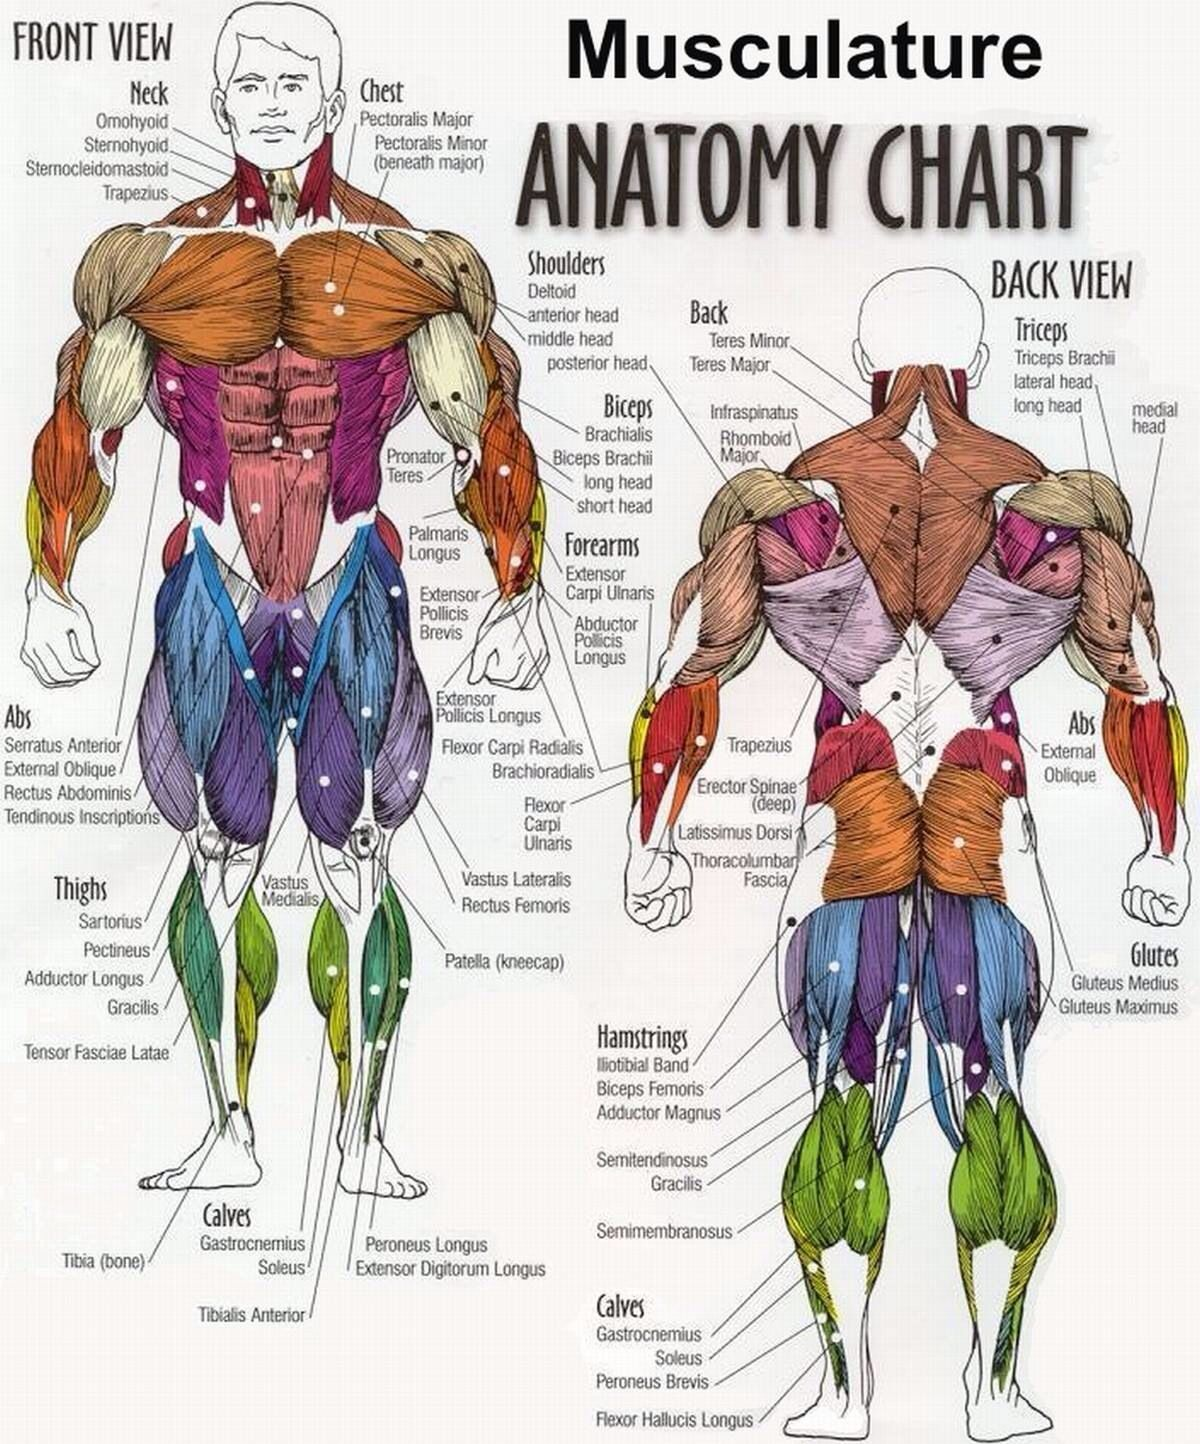 body building anatomy chart from gym posters [ 1200 x 1444 Pixel ]